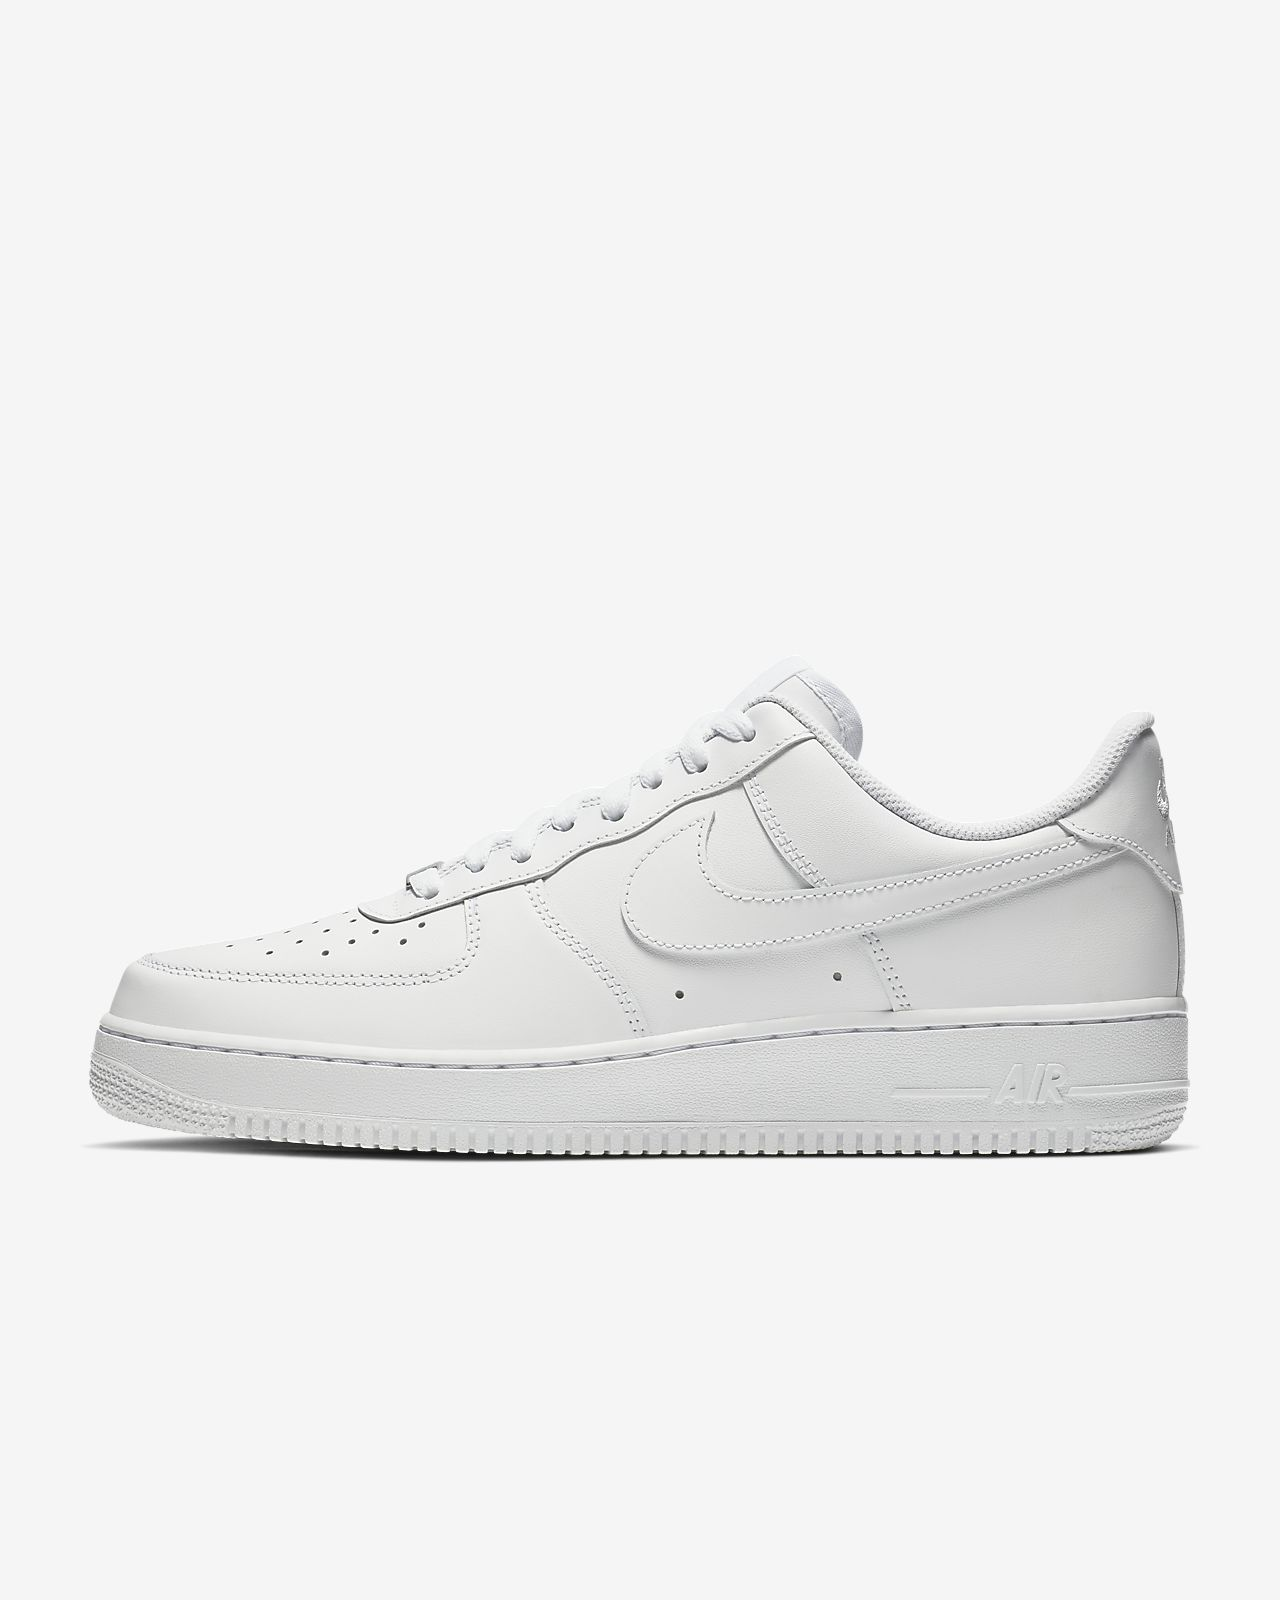 official photos 5d12d f31b0 ... Chaussure Nike Air Force 1  07